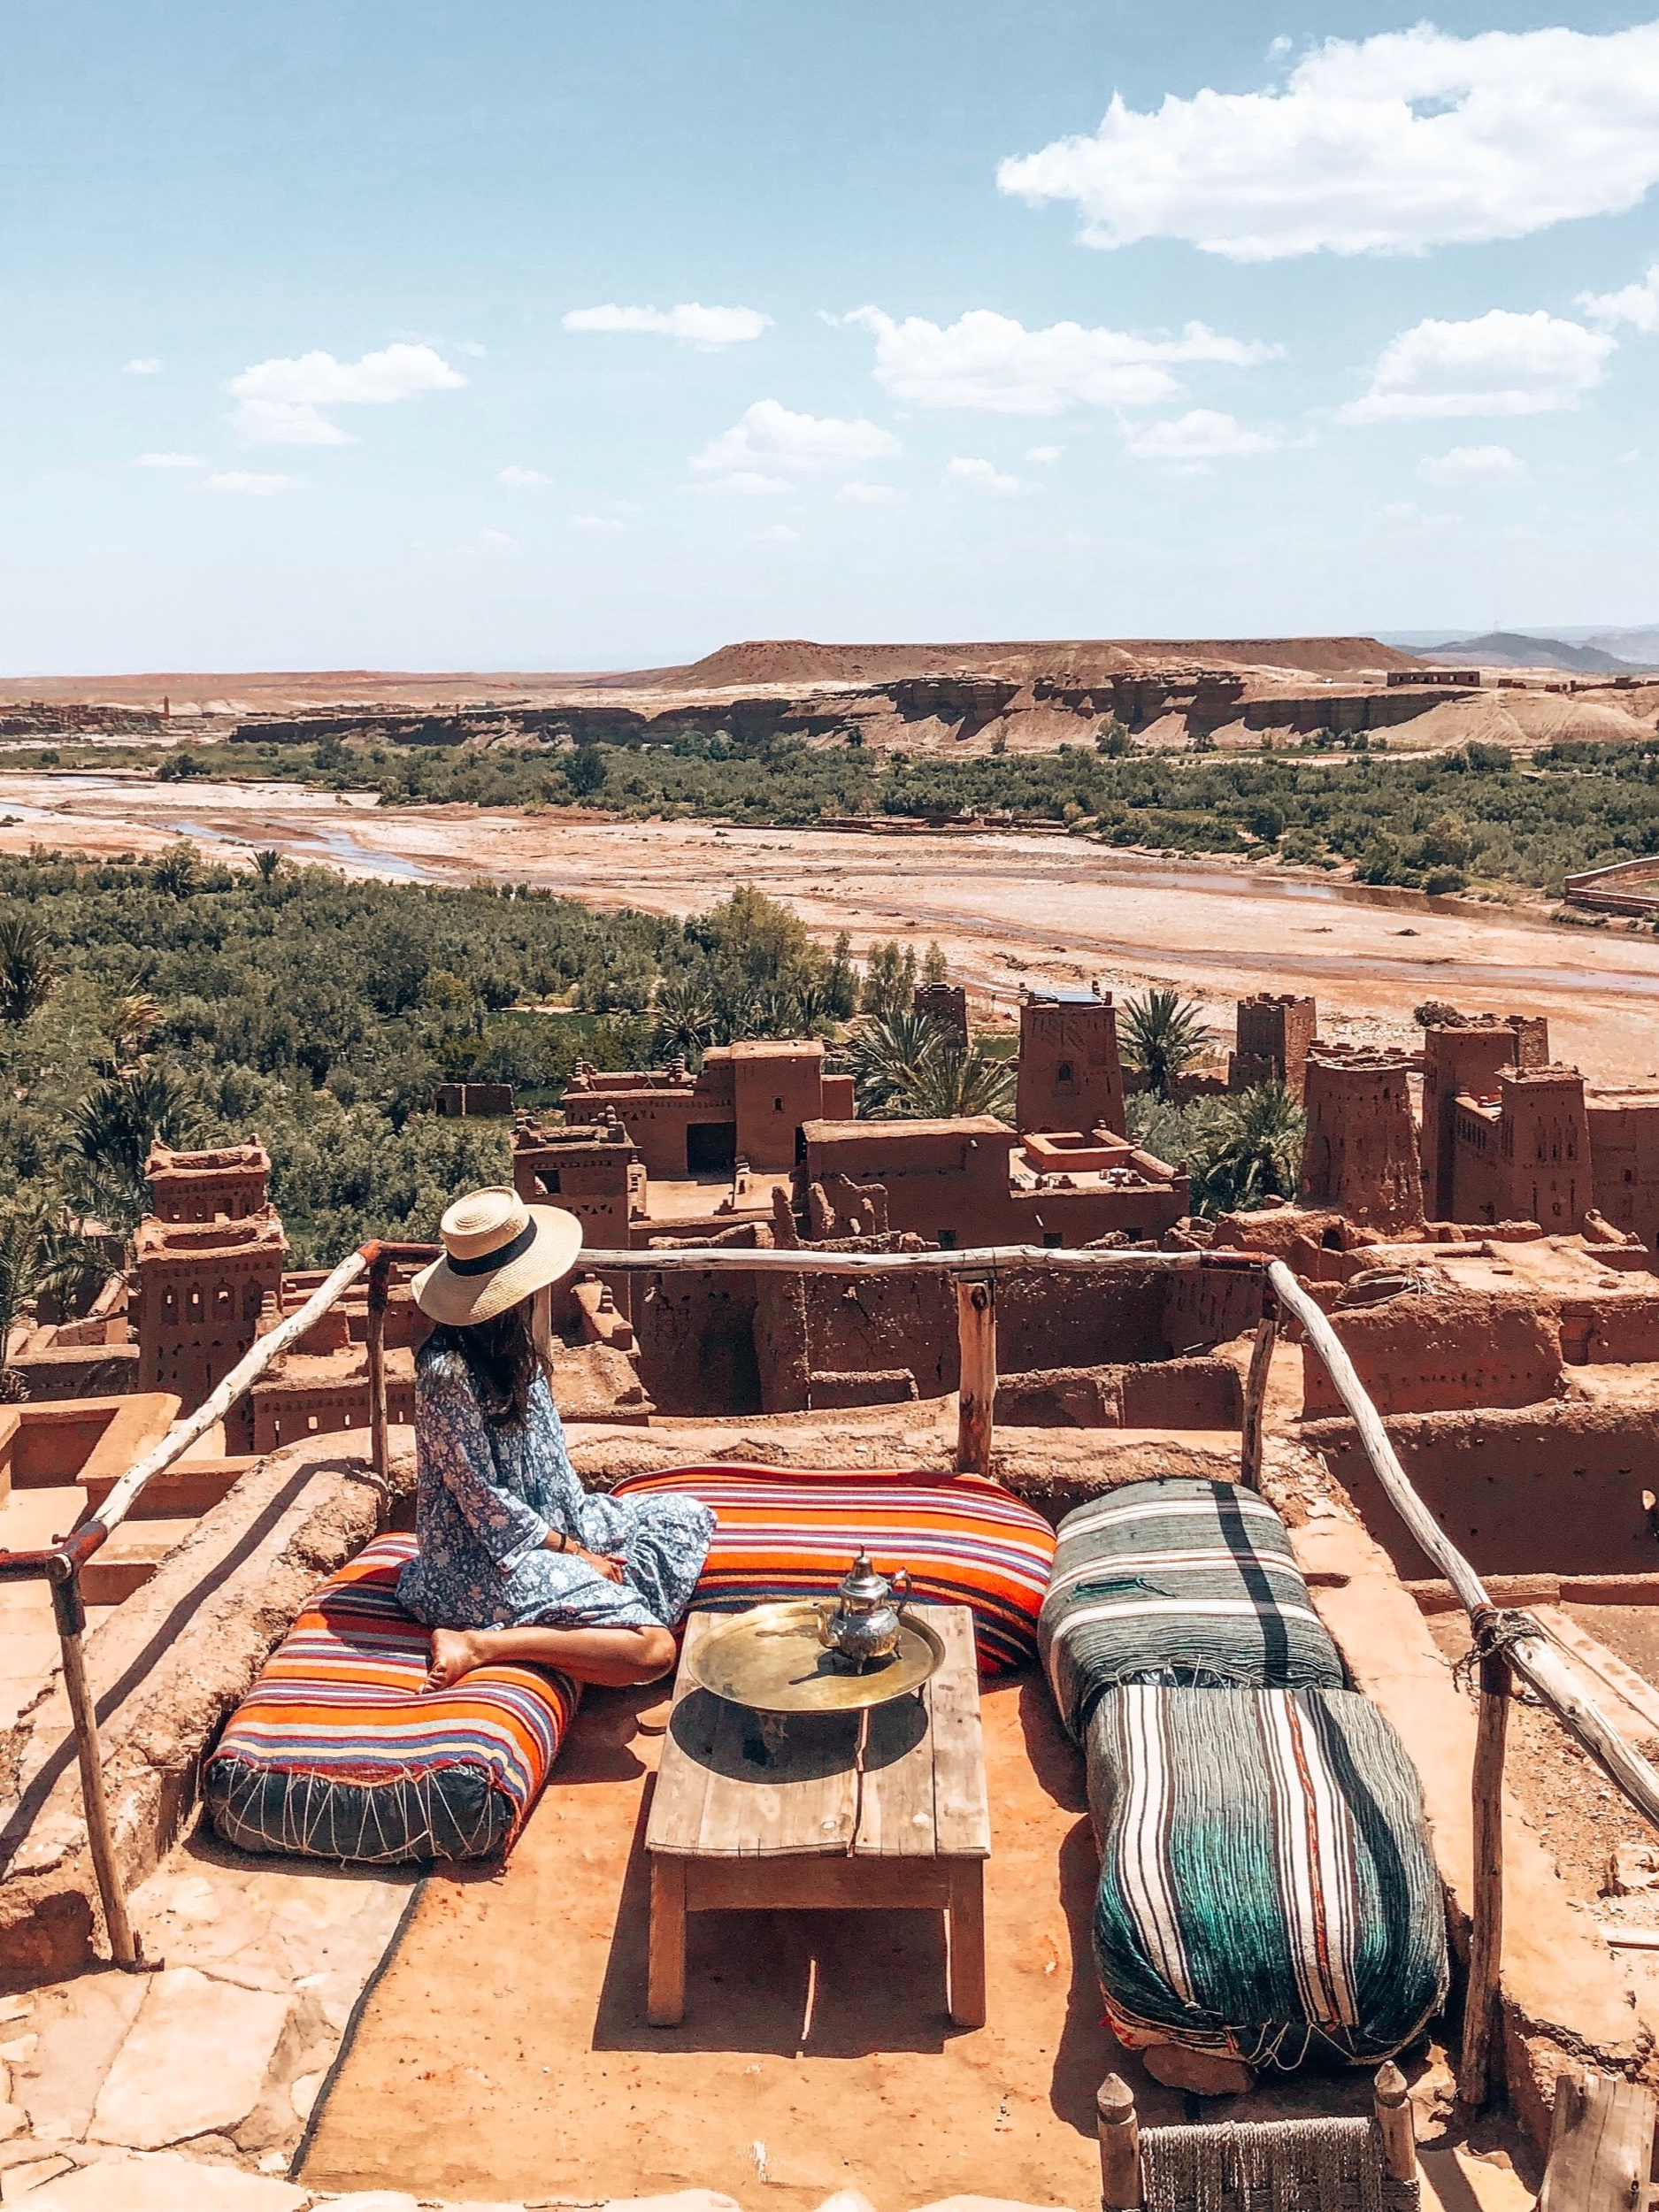 What's Included? - Beautiful Villa - Shared Accommodations (Double/Triple Occupancy)All Ground Transportation Including Airport TransfersAll Meals (Breakfast, Lunch & Dinner)All Tours and Excursion TicketsSouk Hopping at your own Leisure (shop till ya drop!)Bucket List - Glamping in the Middle of the Sahara DesertSunset Camel Ride in the DesertAuthentic Moroccan Cooking ClassDay Trip to EssouriaTrip to the Infamous YSL Gardens - Jardins MajorelleVisit to Ait-Ben-Haddou (Unesco World Heritage Site)A Visit to Bahia Palace and Koutobia MosqueClassic Hammam Bath and Spa ExperienceFriendly, Knowledgeable, and Fun Tribe LeadersSwag BagAdd on: Hot Air Balloon*Flights not Included*